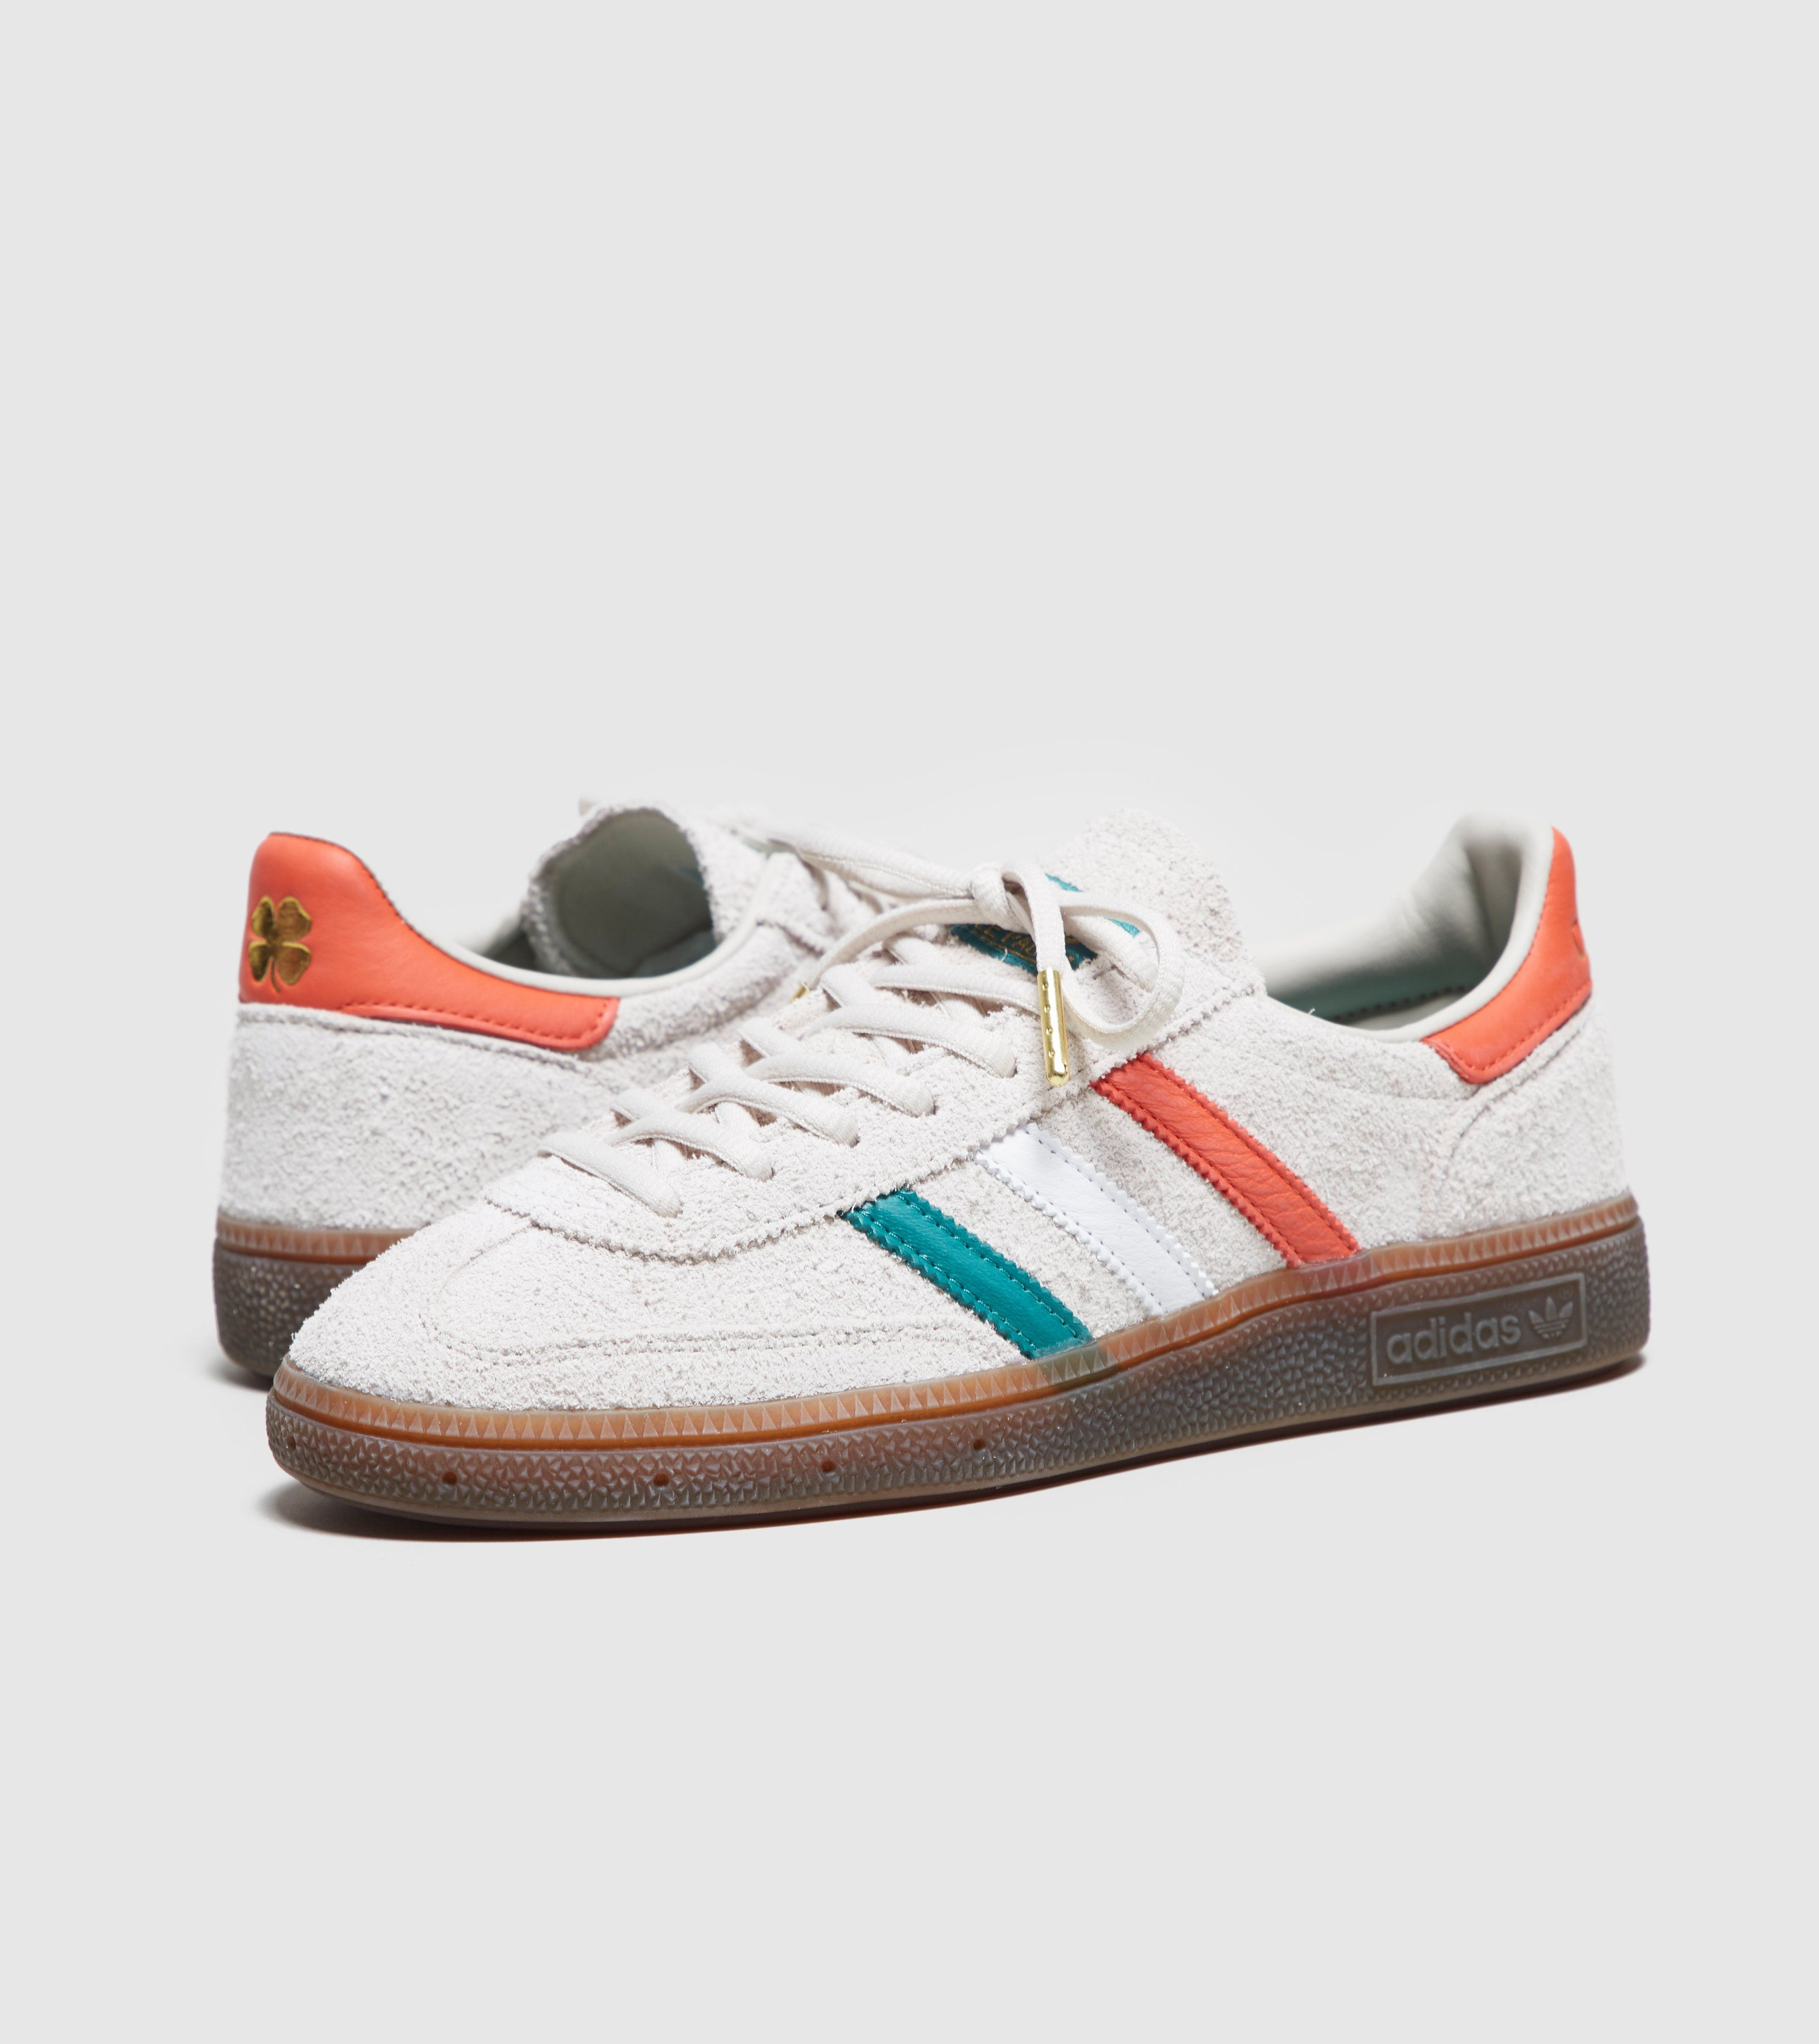 adidas Originals Handball Spezial St Patrick's Day Women's